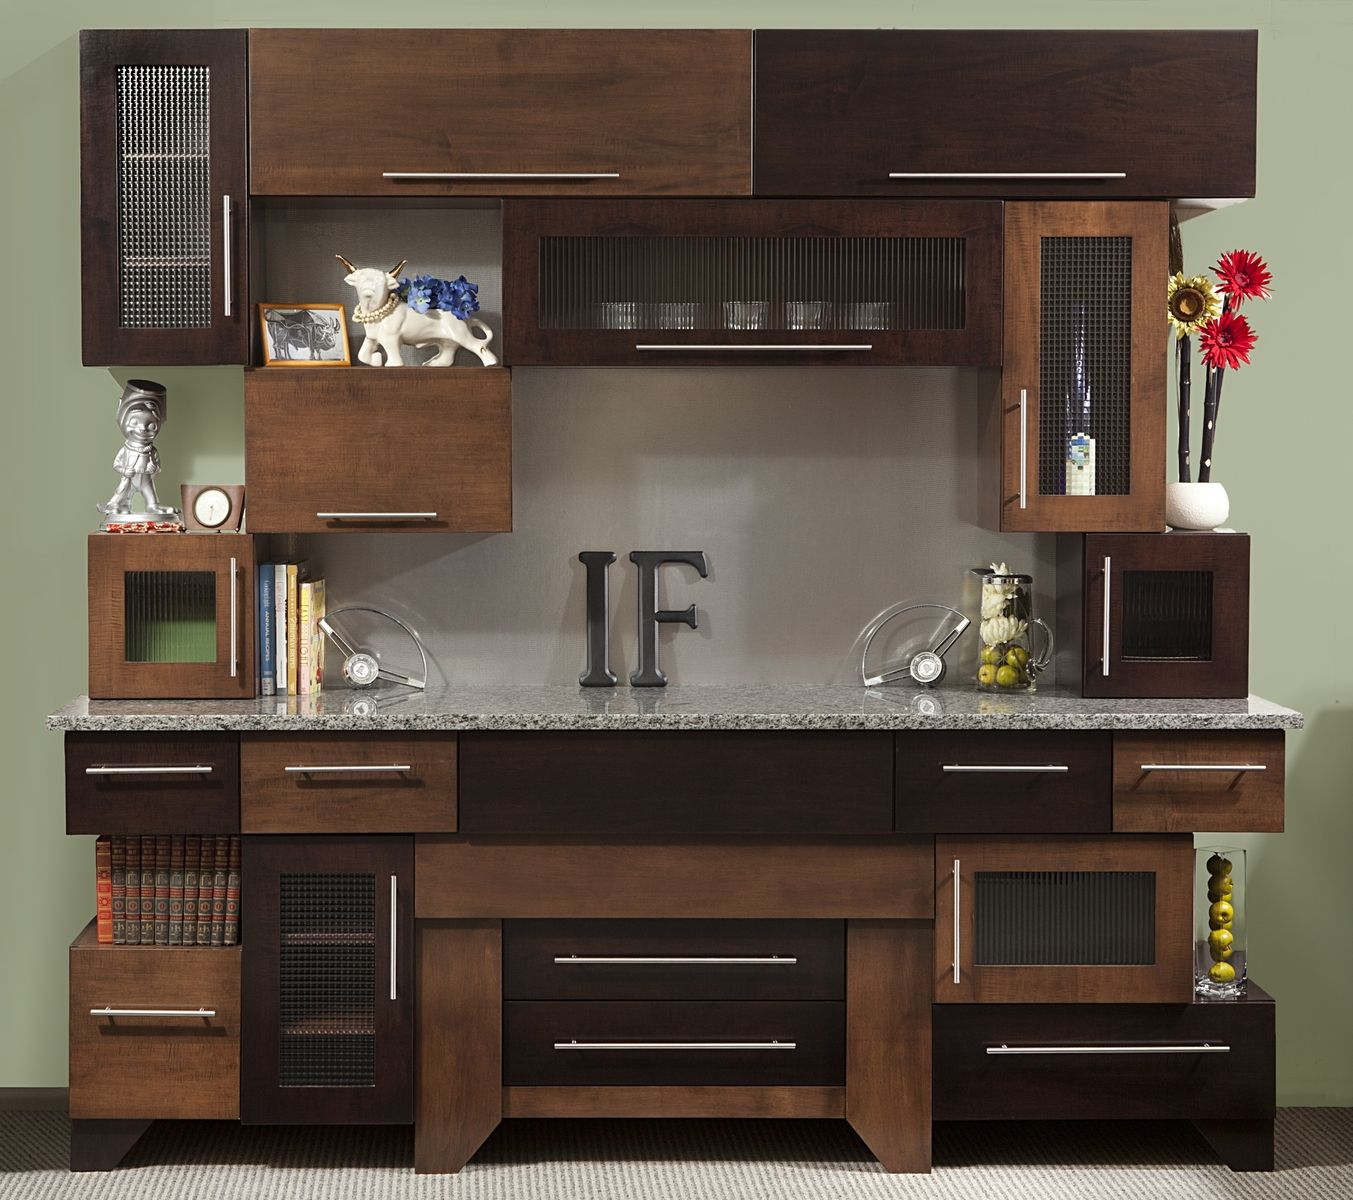 Hand made cubist cabinets kitchen modern clean in tiger for Modern kitchen units designs